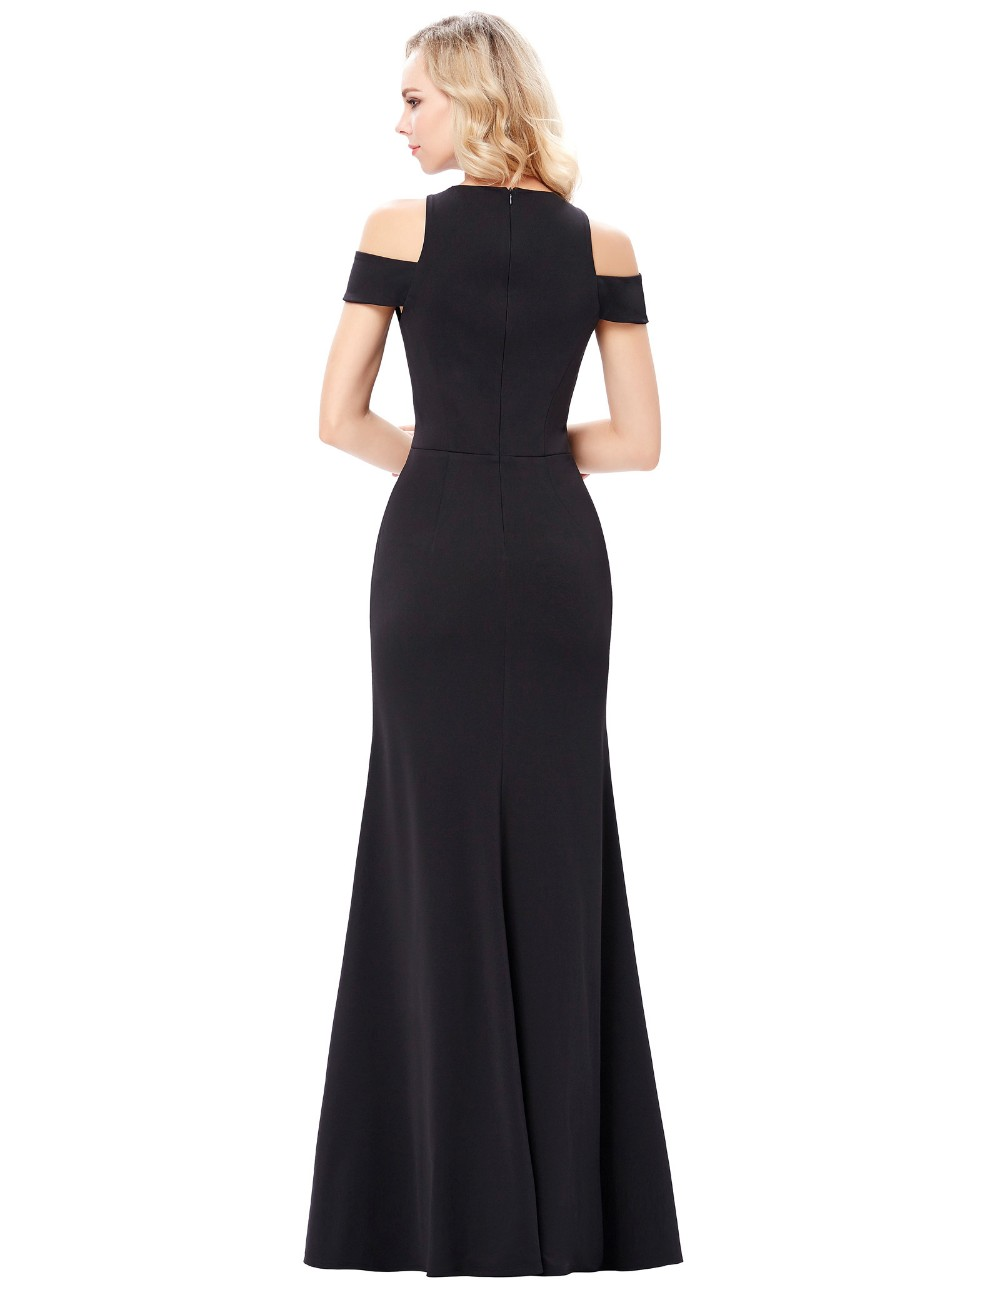 Kate Kasin Full-Length Cap Sleeve Long Black High Split Prom Dress KK001017-1